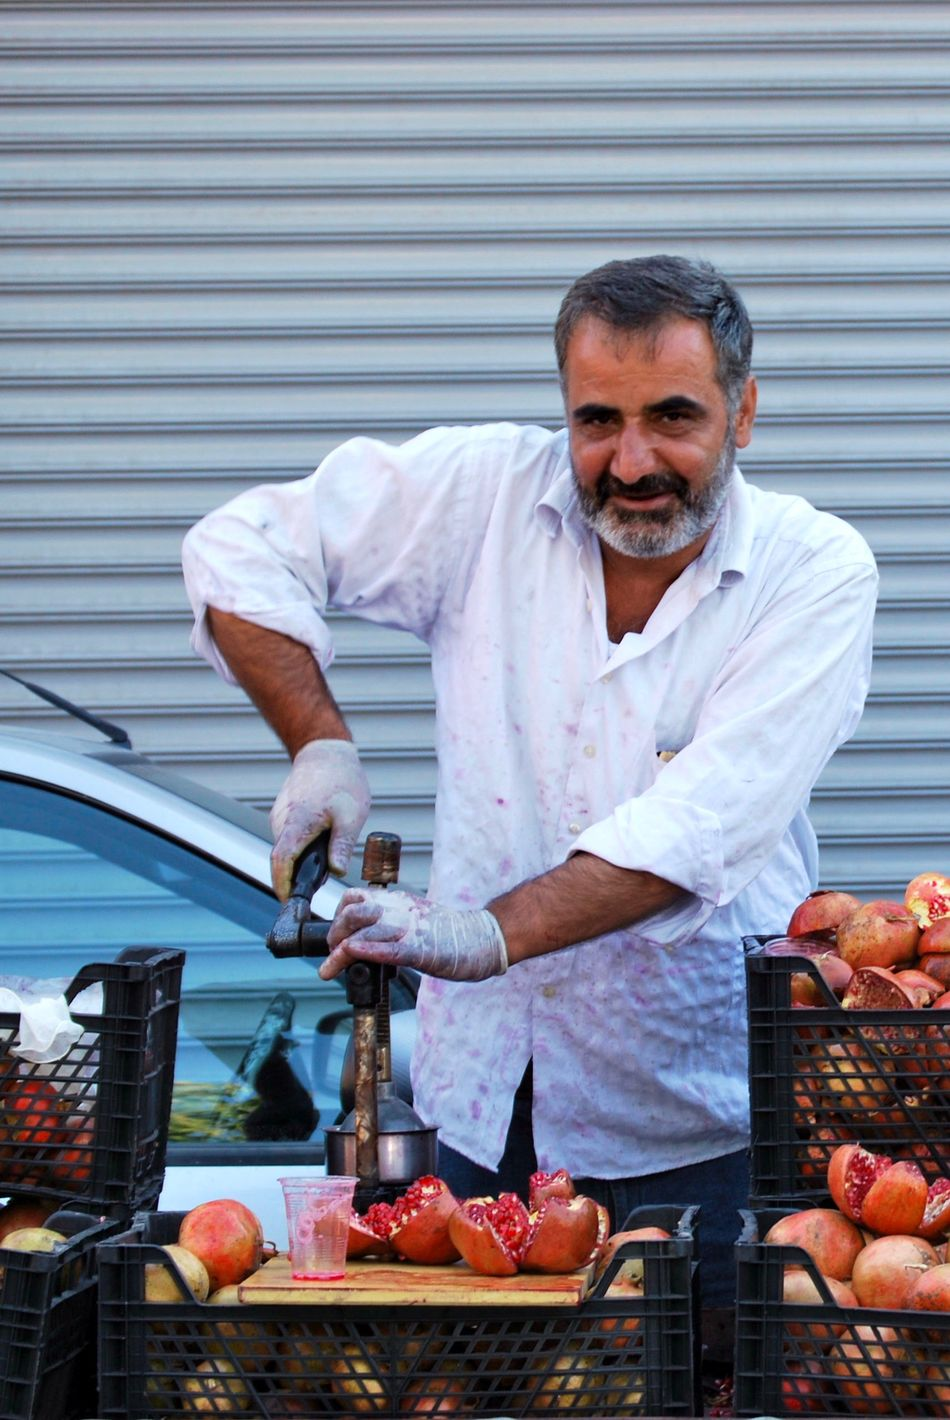 A man in Istanbul preparing a fresh glass of pomegranate juice Food And Drink Handmade Istanbul Juice Juice Press Juice Press Looking At Camera Natural Viagra Pomegranate Turkey